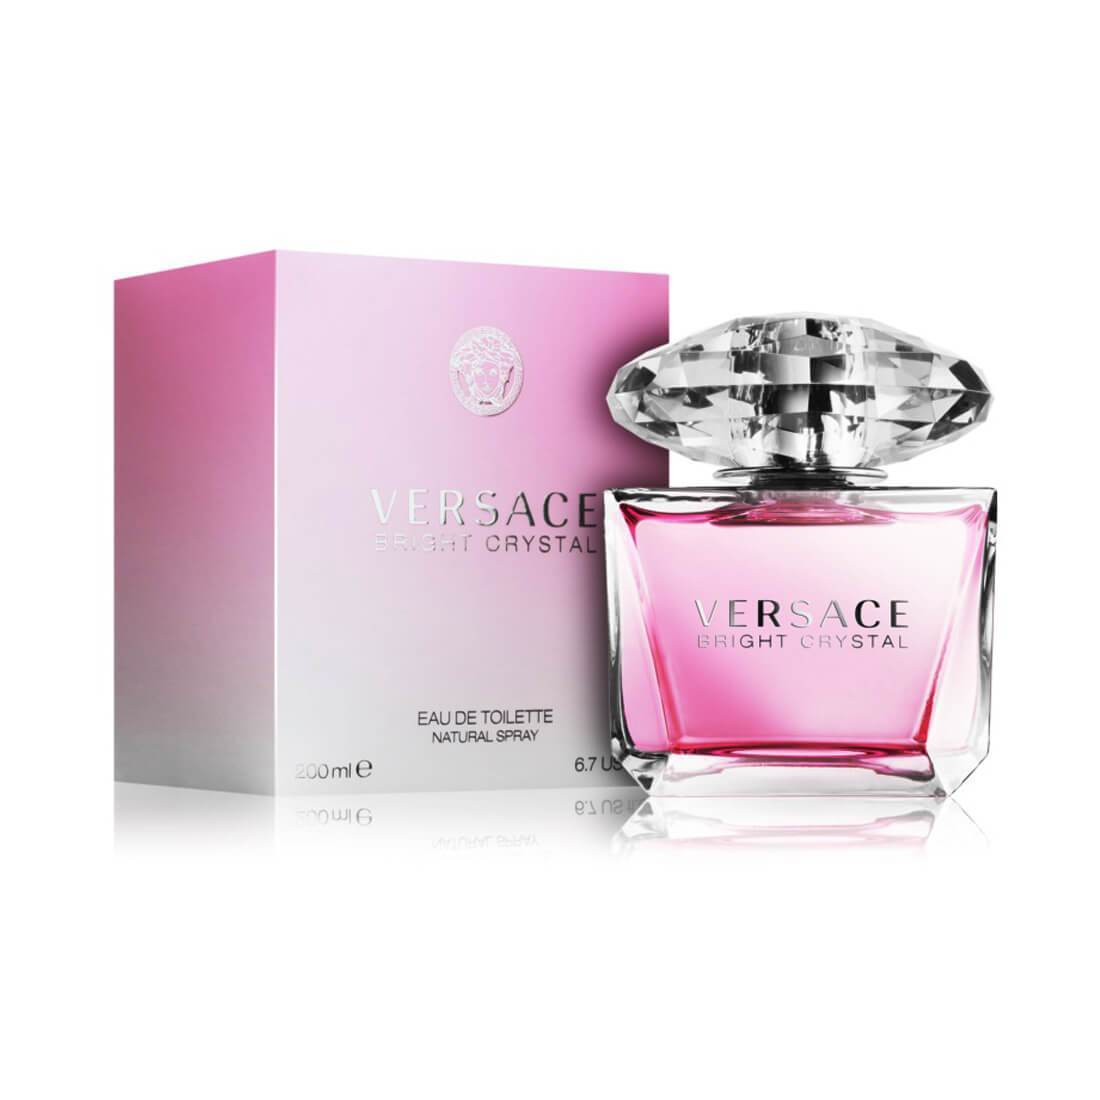 Versace Bright Crystal EDT Perfume For Women